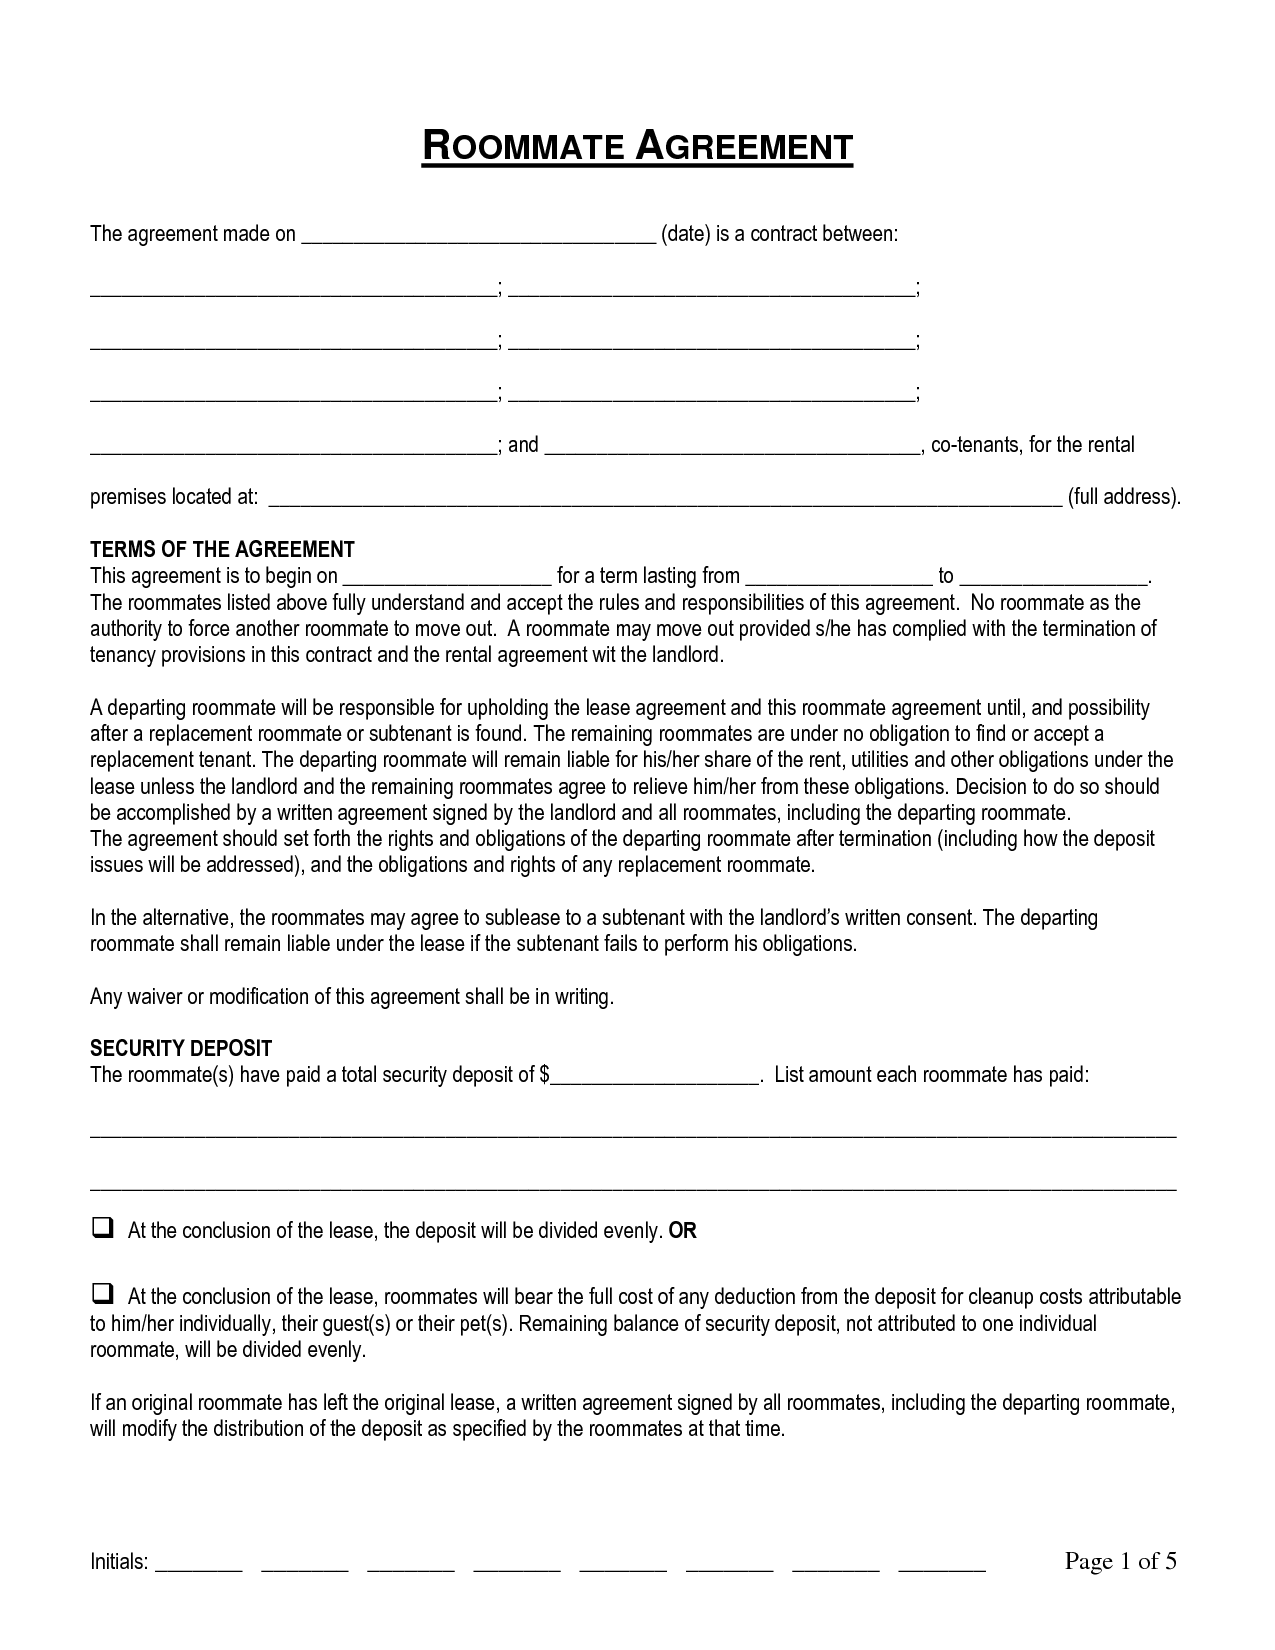 roommate agreement contracts Termination of Roommate Agreement by pqo69567 - roommate contract ...